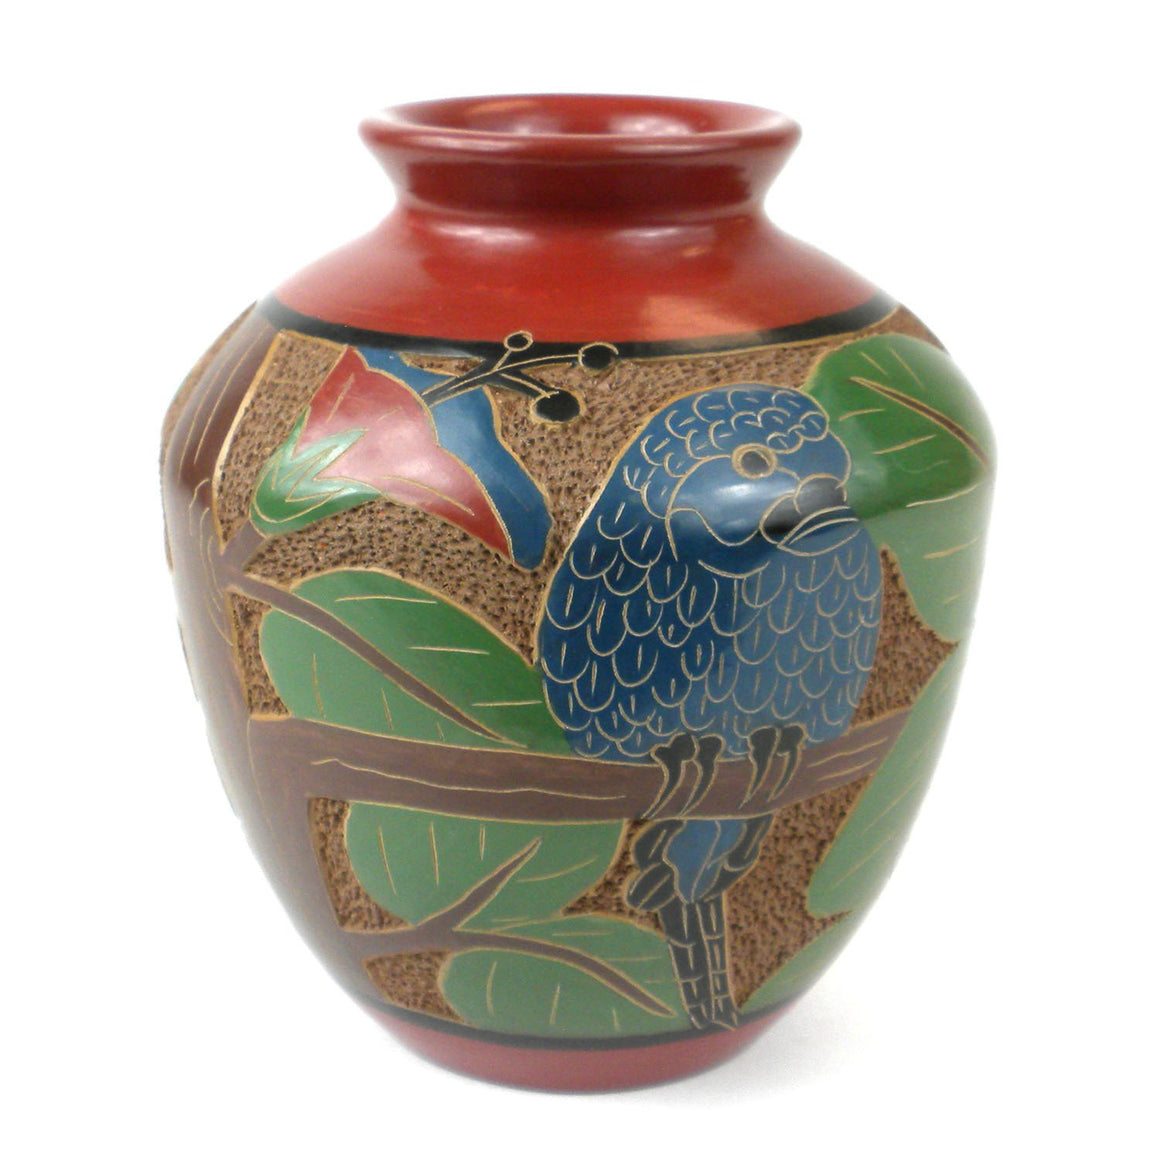 6 inch Tall Vase - Parrot Handmade and Fair Trade